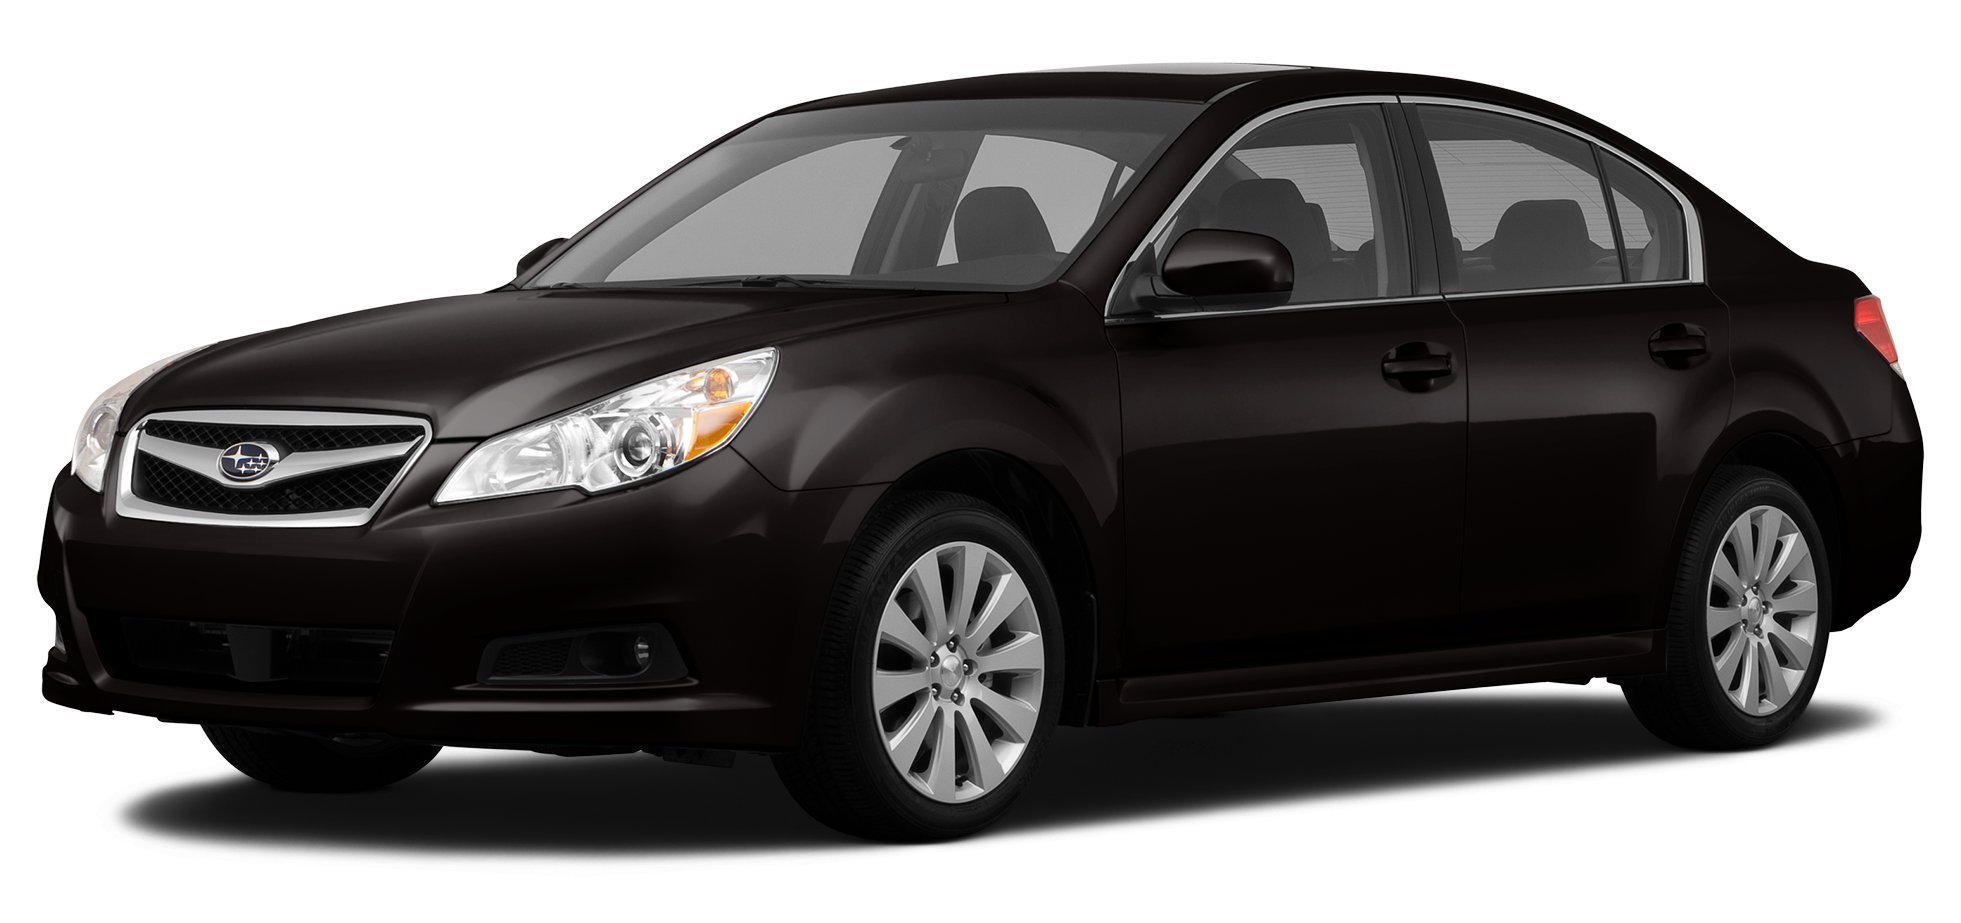 Amazon Com 2012 Subaru Legacy 2 5gt Limited Reviews Images And Specs Vehicles